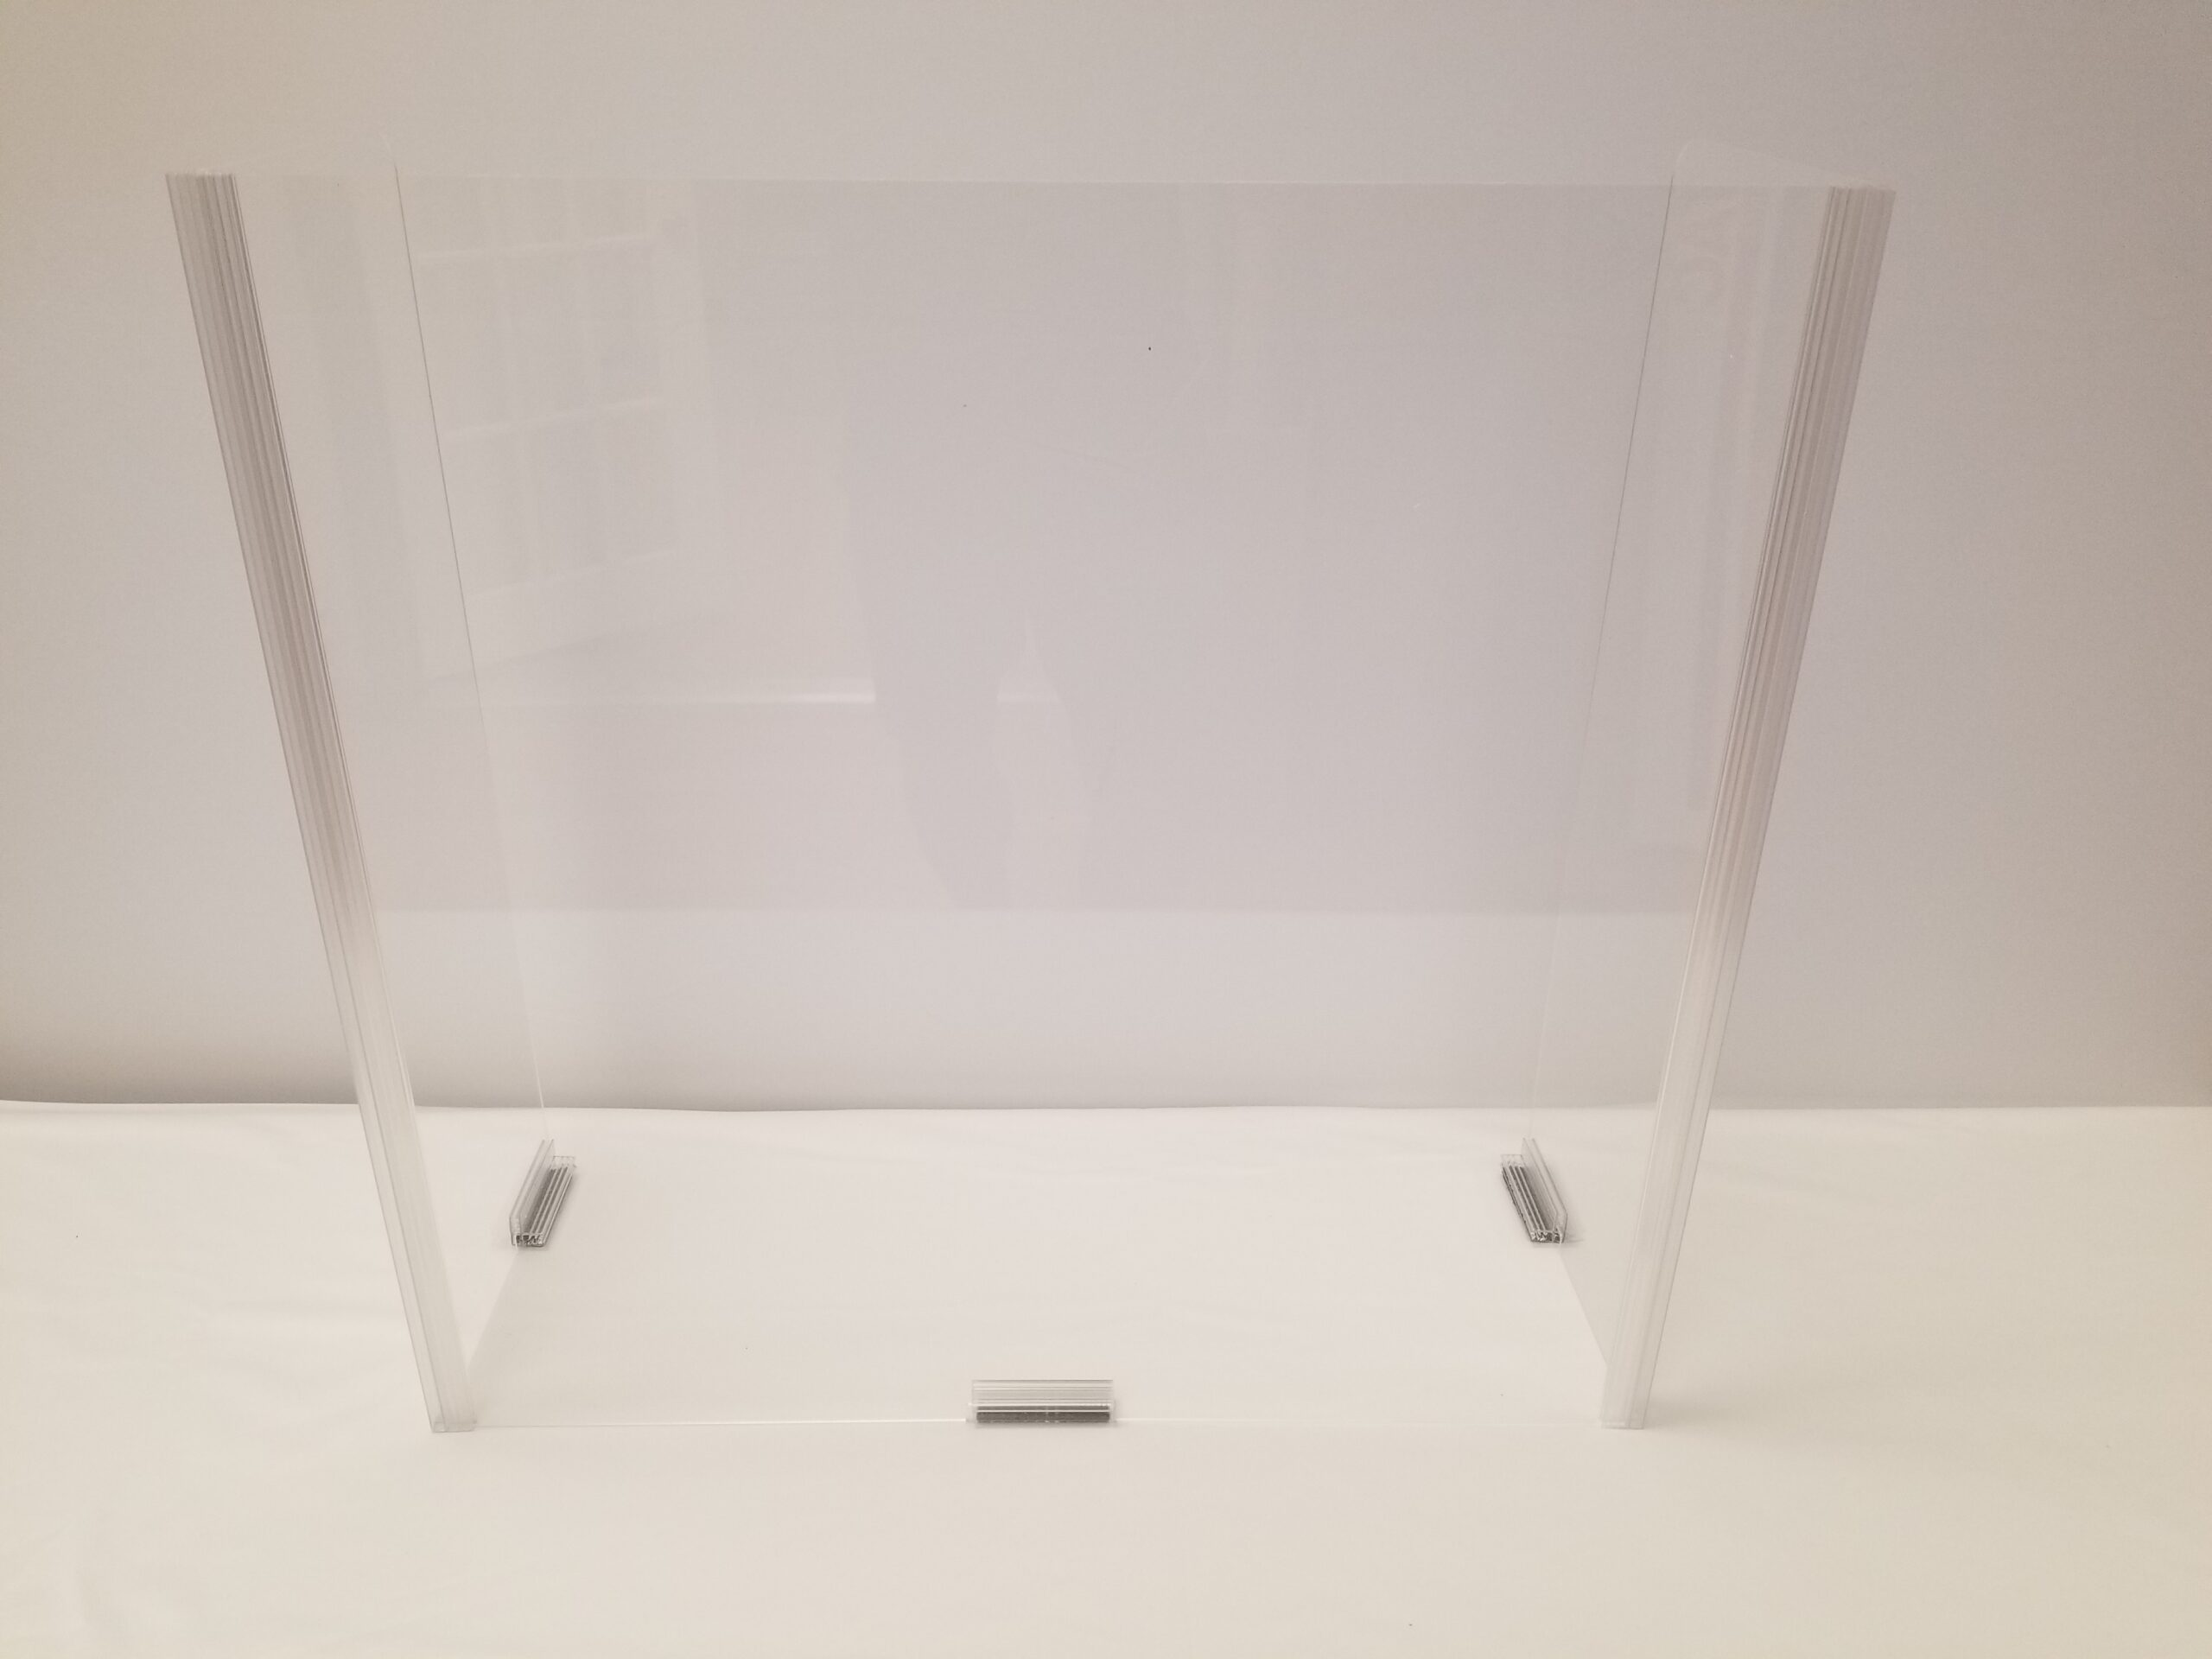 Student Acrylic barriers